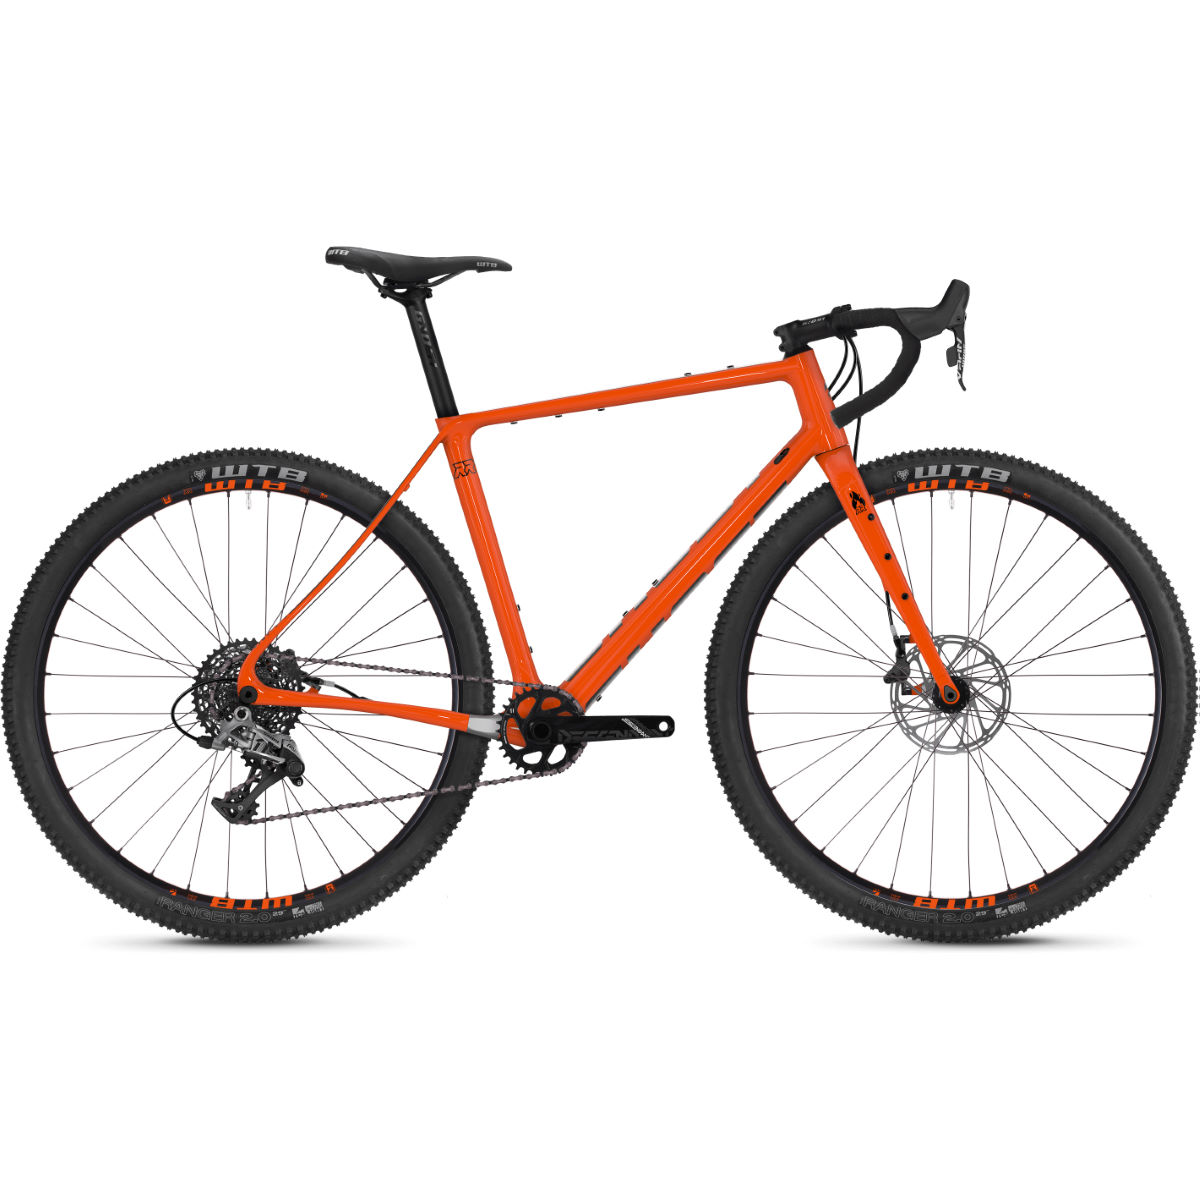 Ghost Fire Road Rage 6.9 Adventure Road Bike (2019) - Bicicletas de carretera